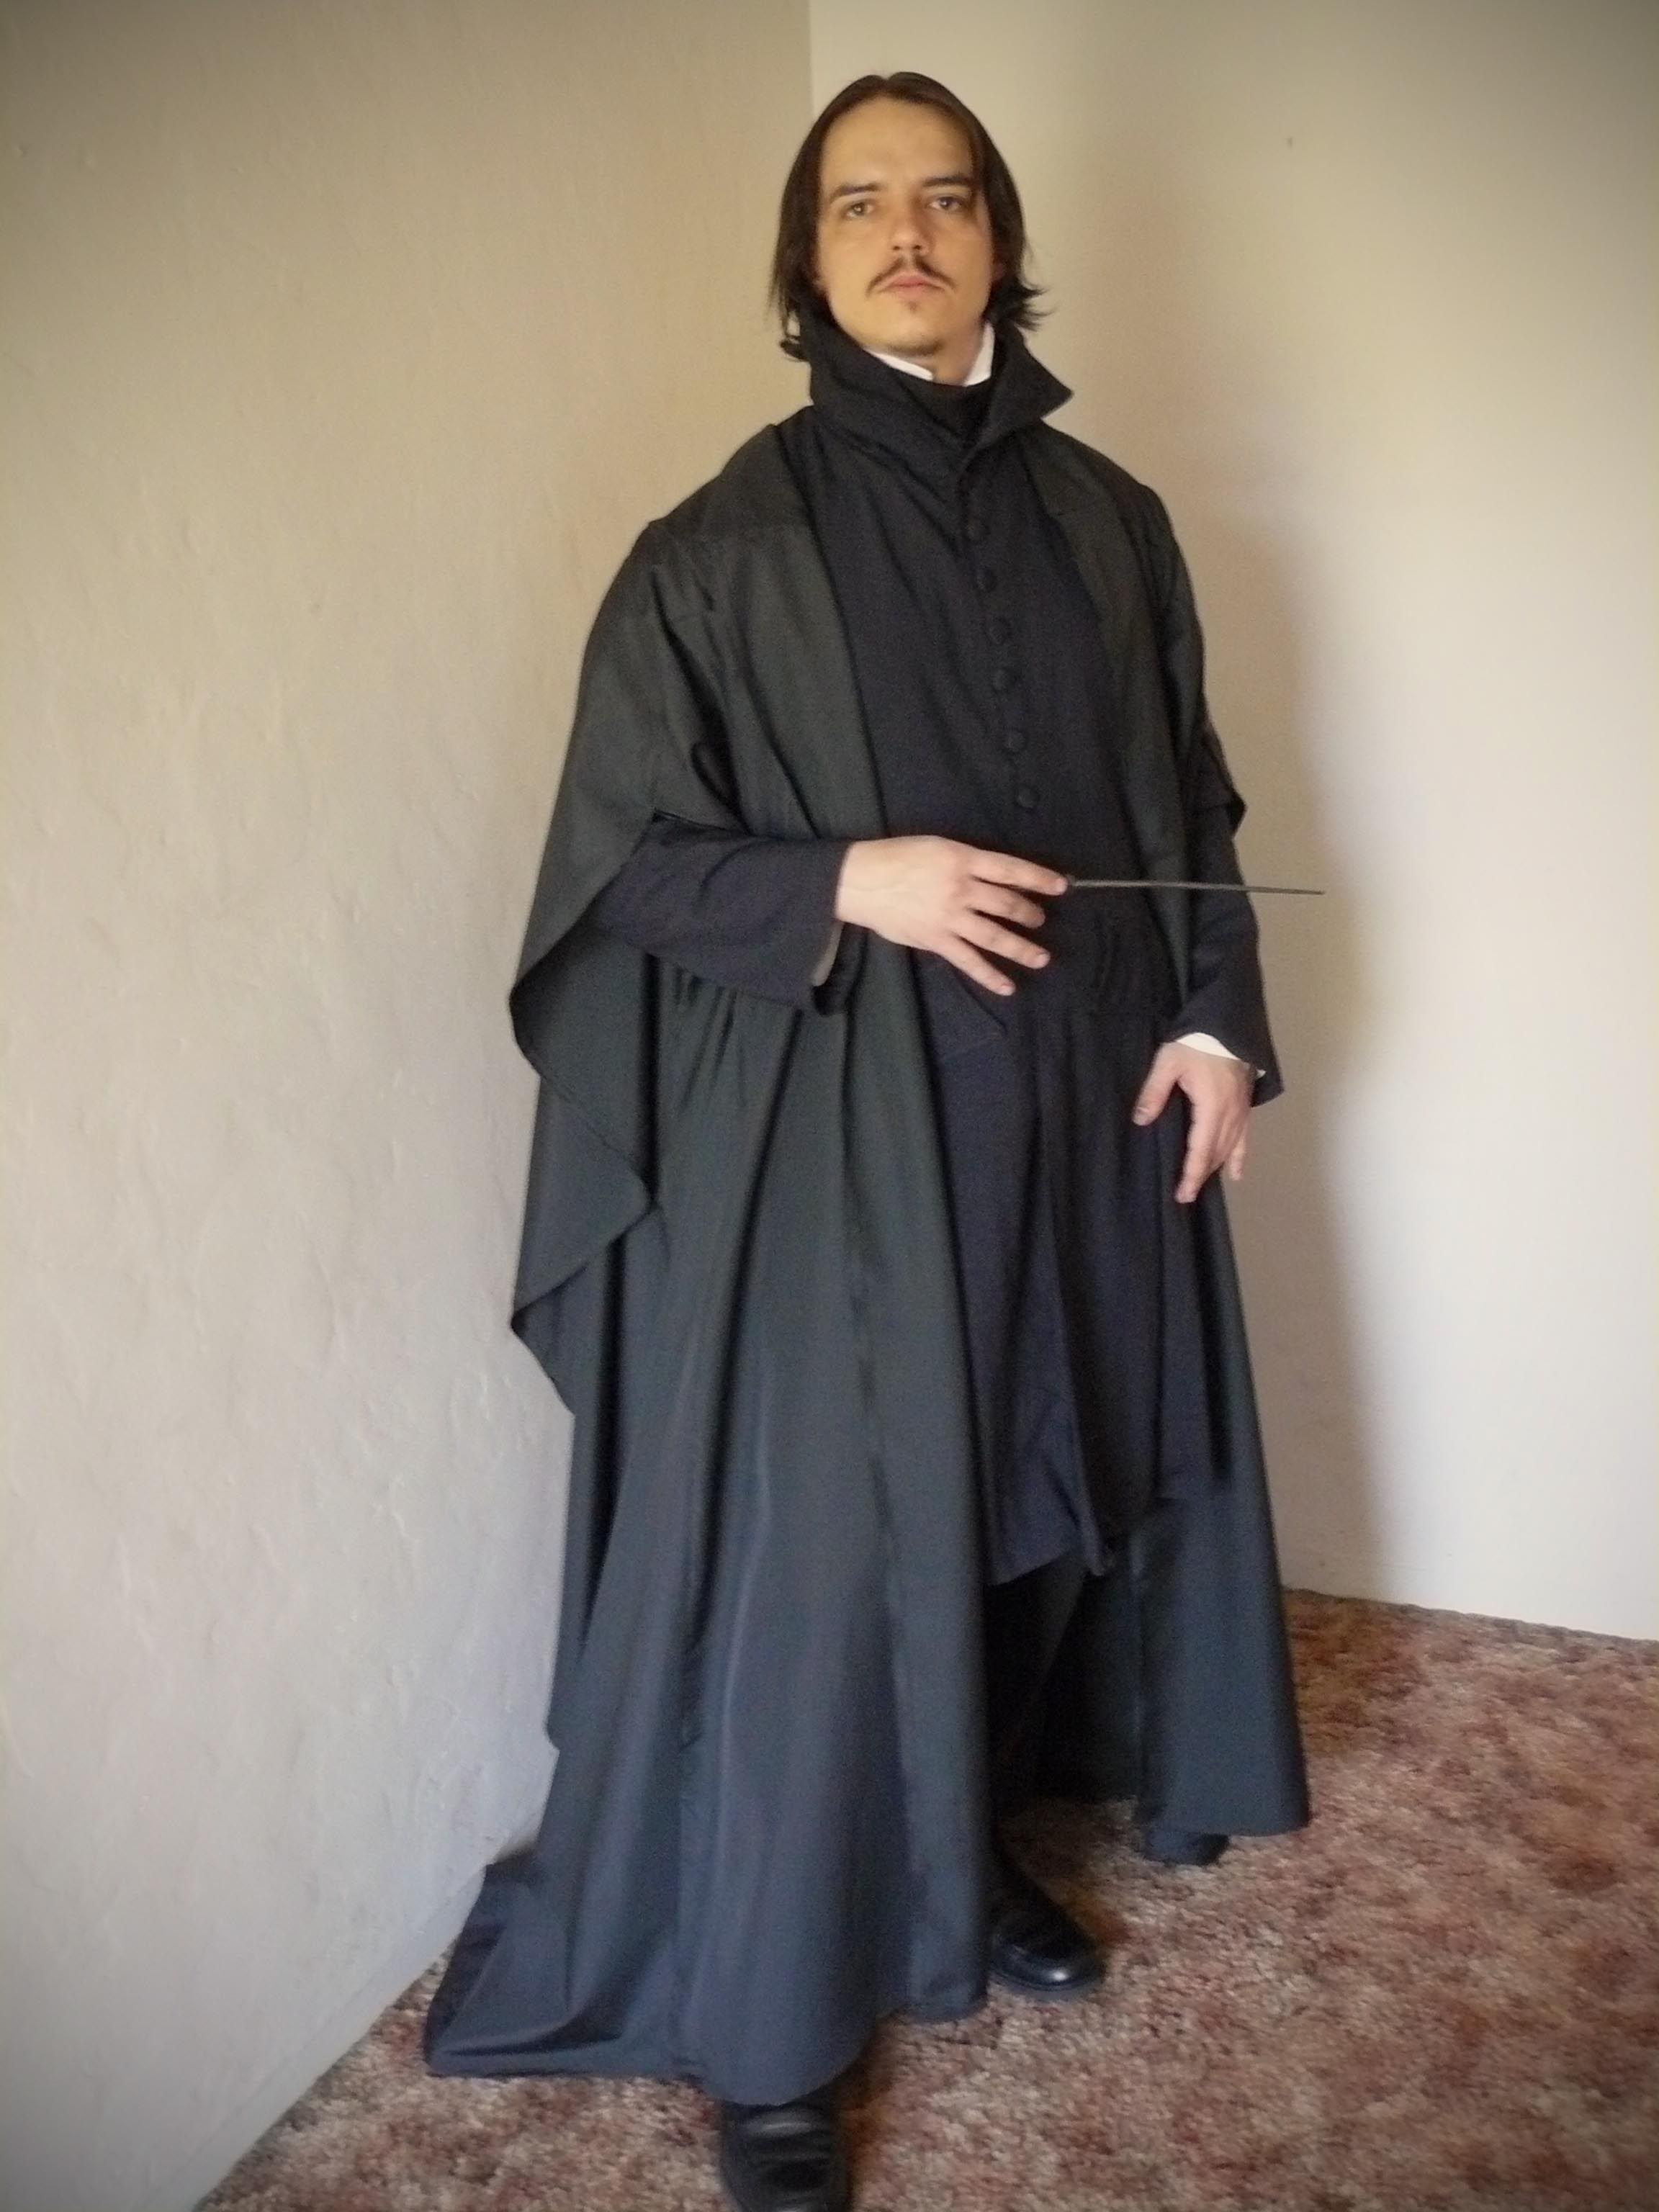 Snape Costume - Severely Right Brained   Inspiration   Pinterest ...